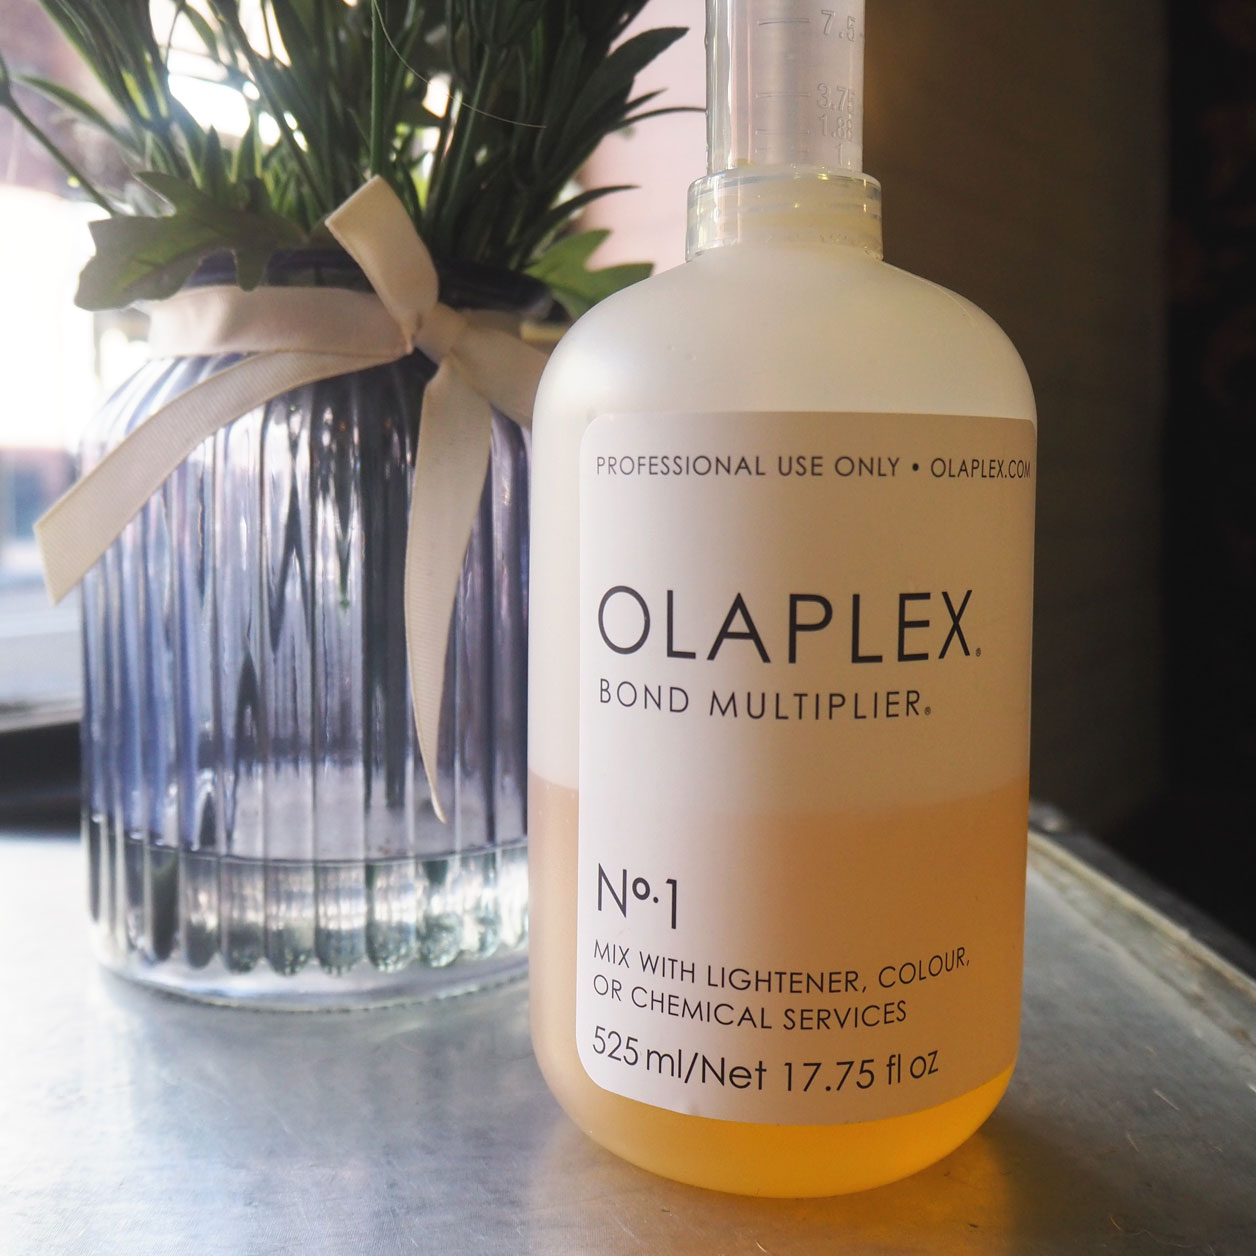 Olaplex Bond Multiplier bottle